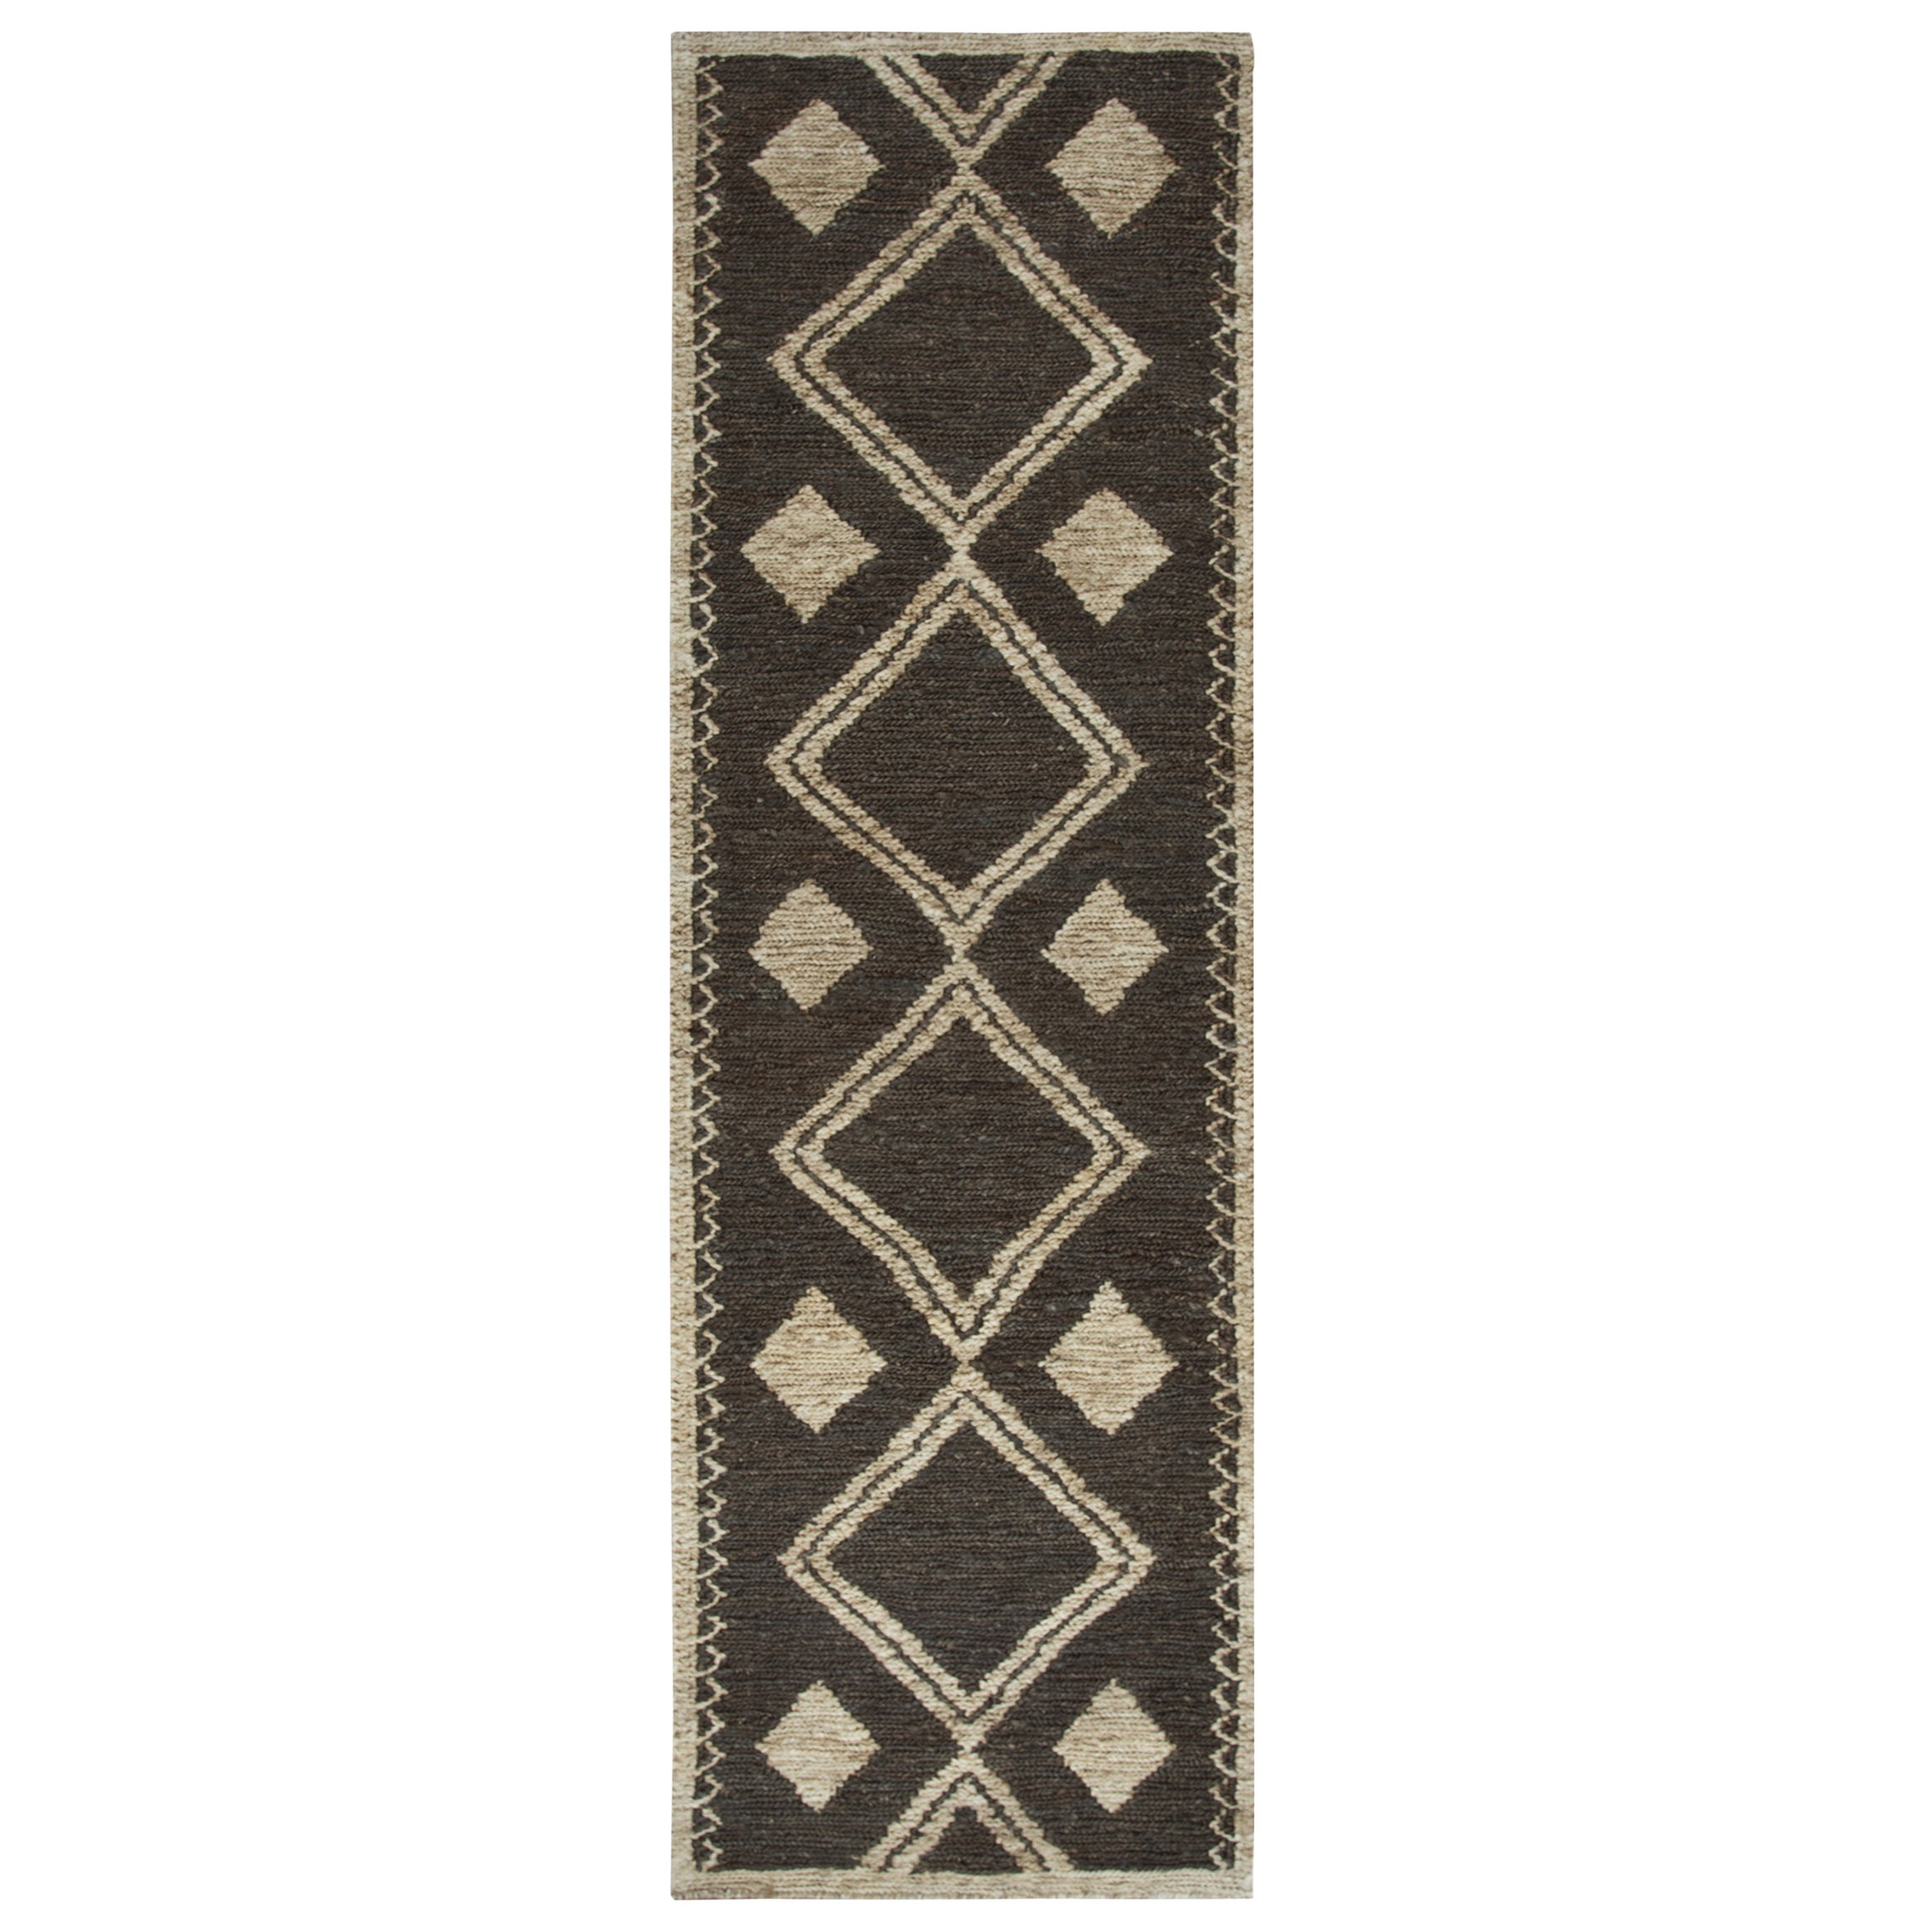 Hand-woven Whittier Brown Jute Geometric Runner Area Rug (26 x 8) - 26 x 8 (26 x 8 - Brown)